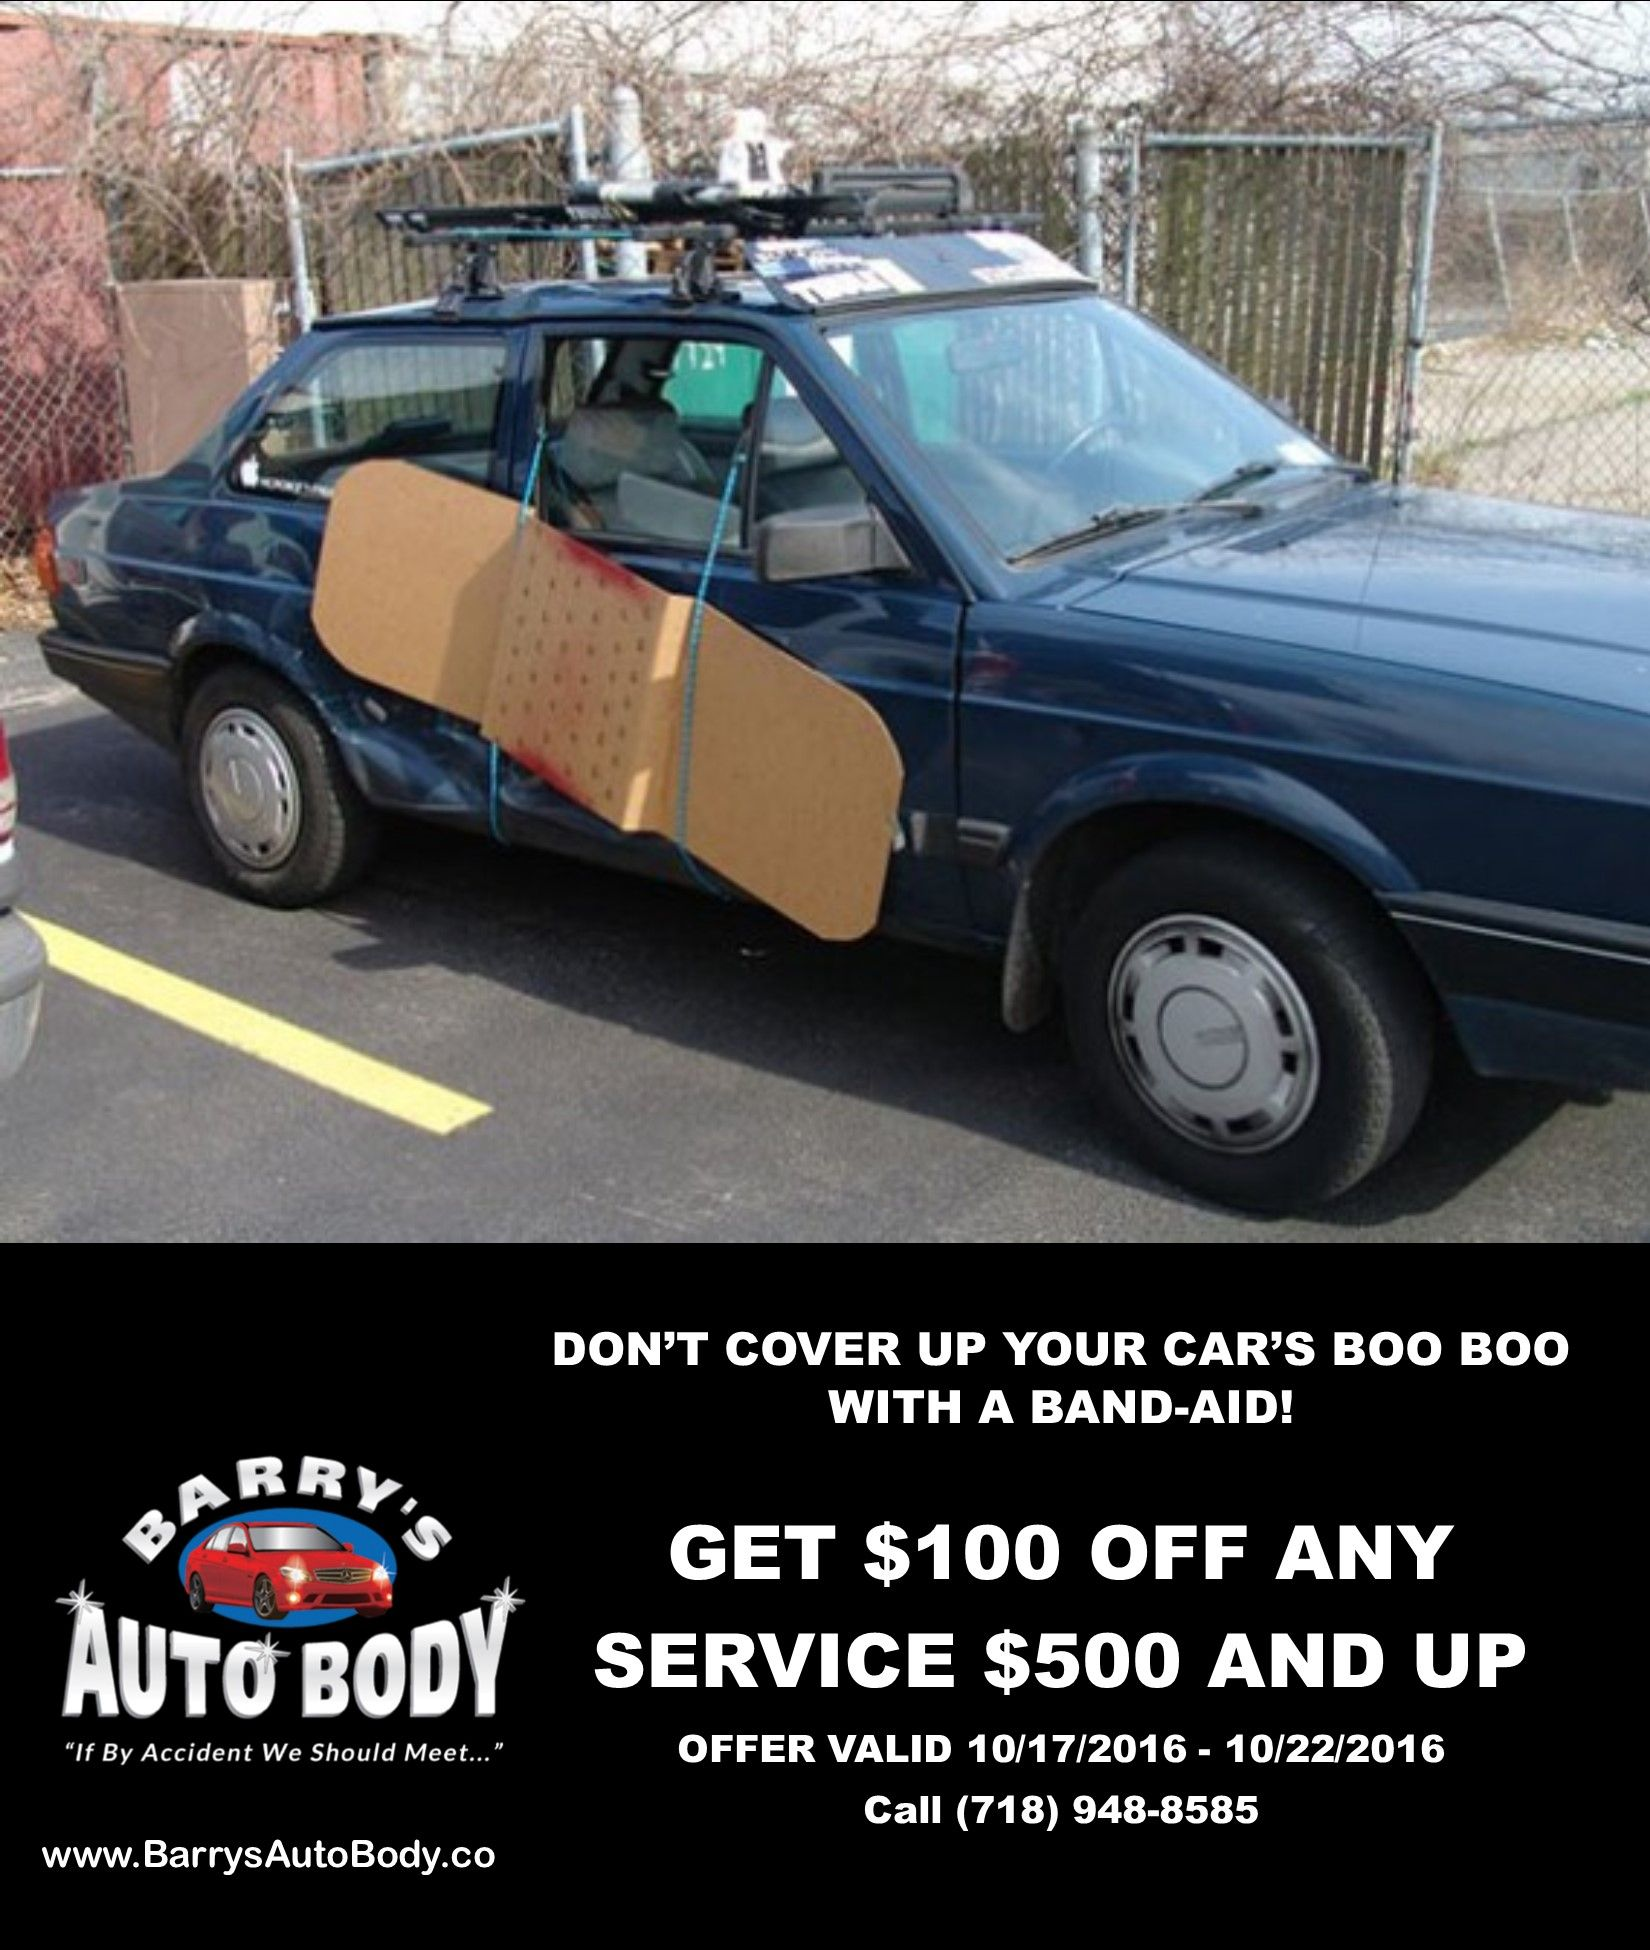 This week only! Receive $100 off any service $500 and up! (Just ...